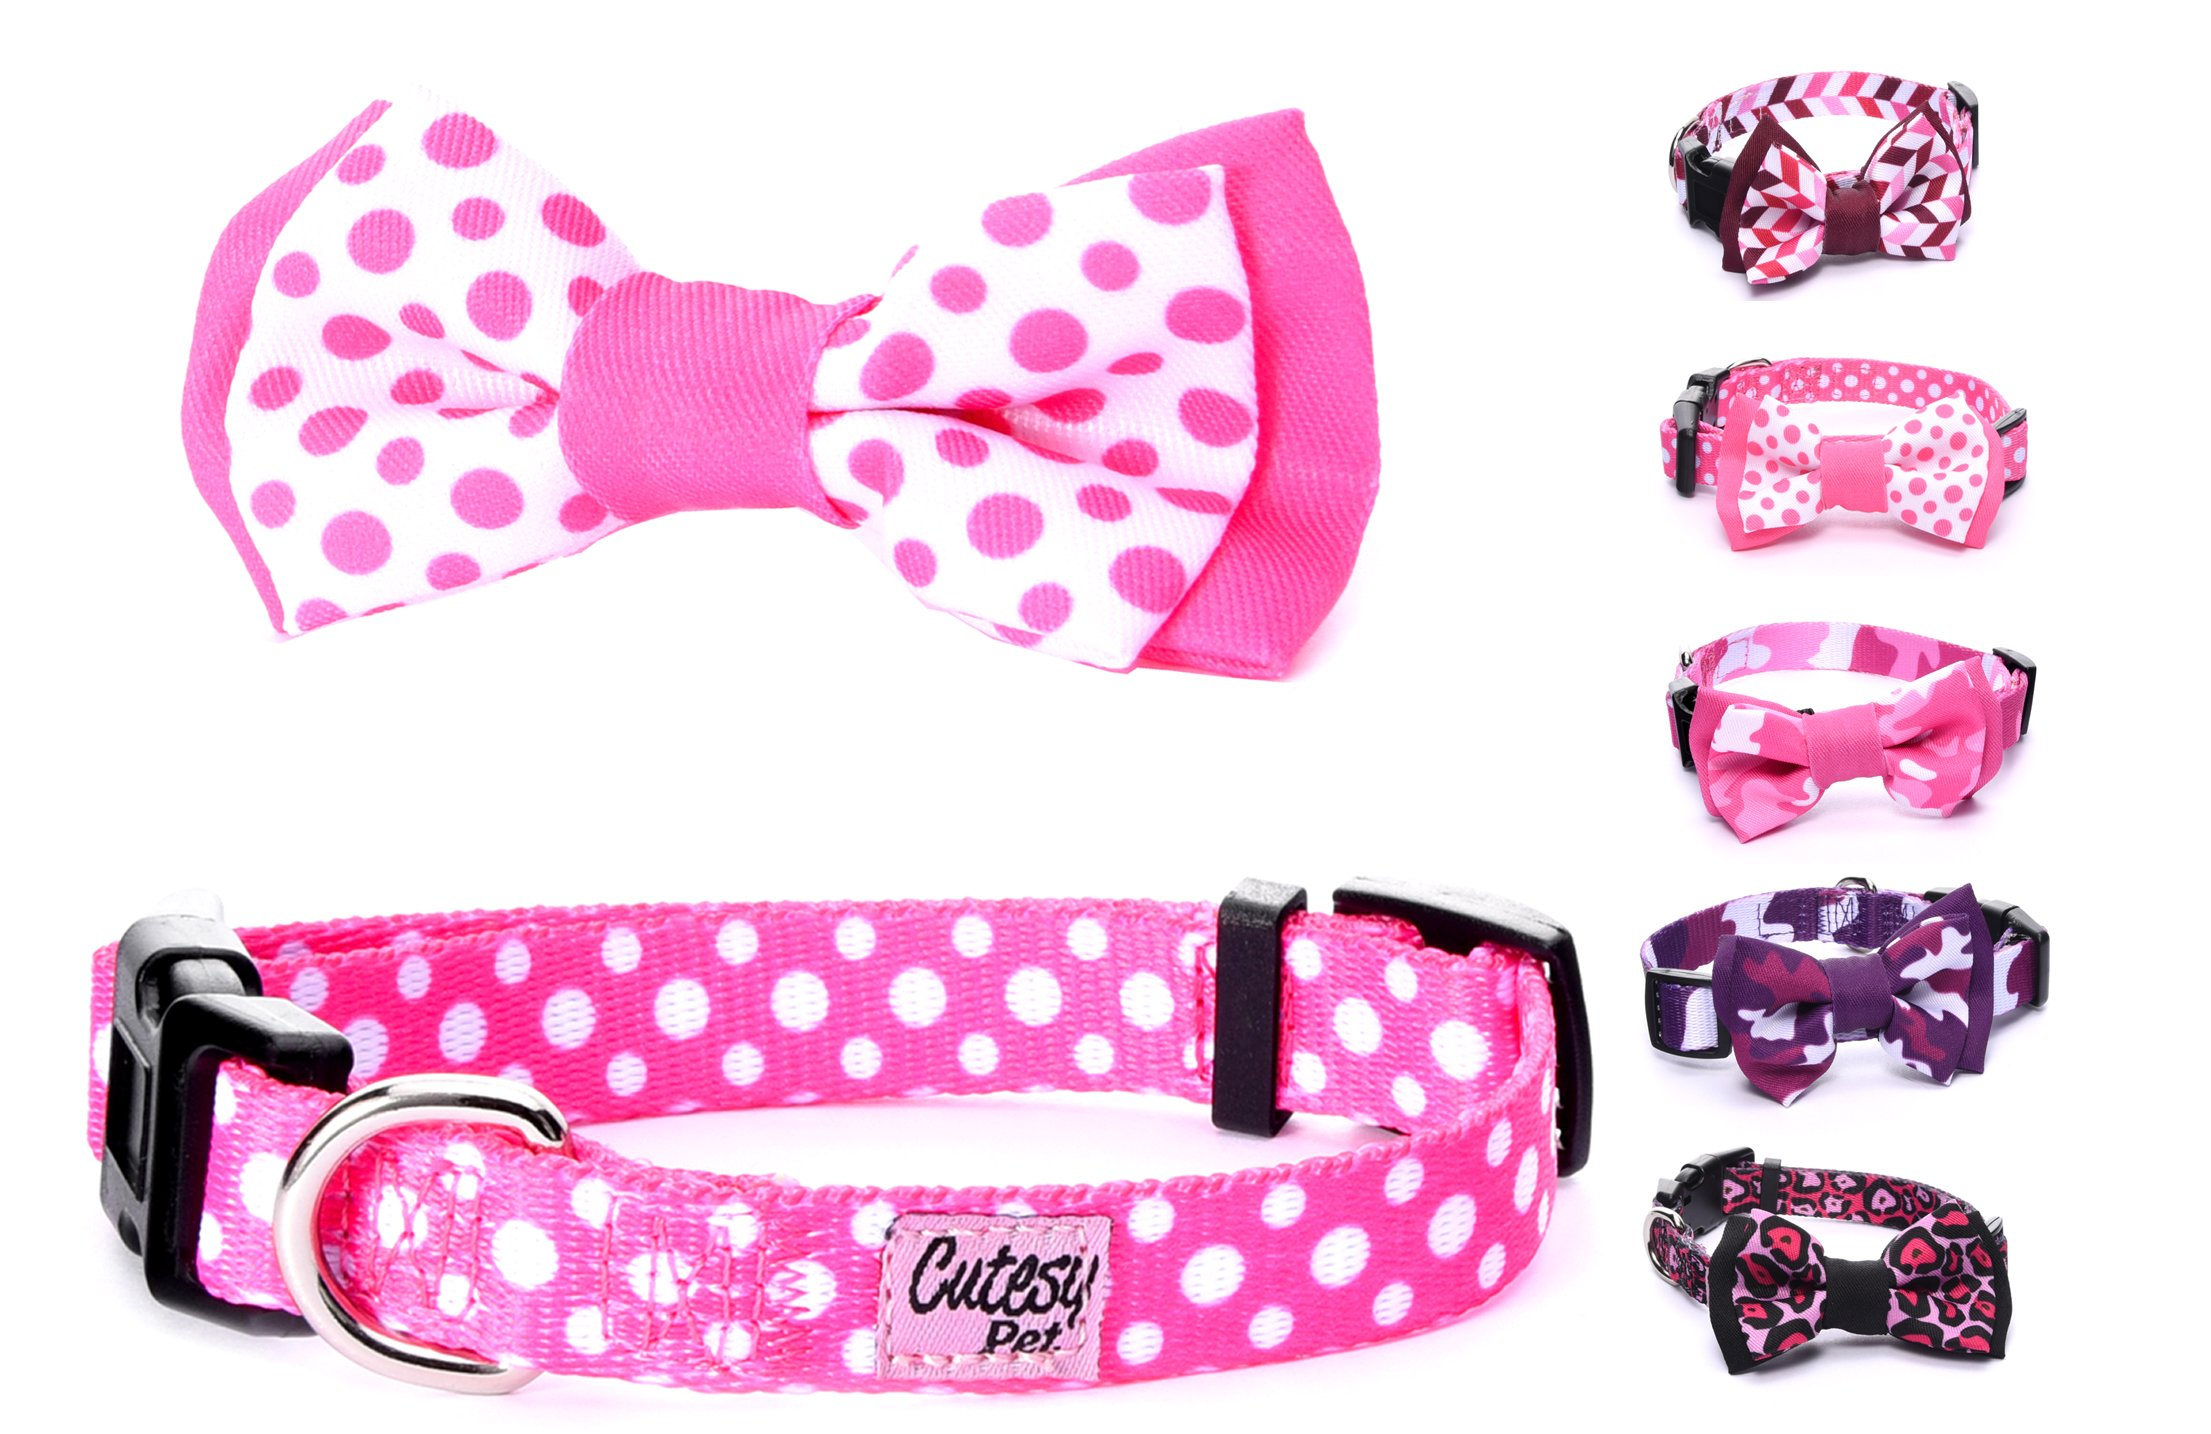 Cutesy Pet | Dog Collar with Adjustable Bow | Comfortable and Strong | Pink Polka Dots | 5 in 4 Different Sizes